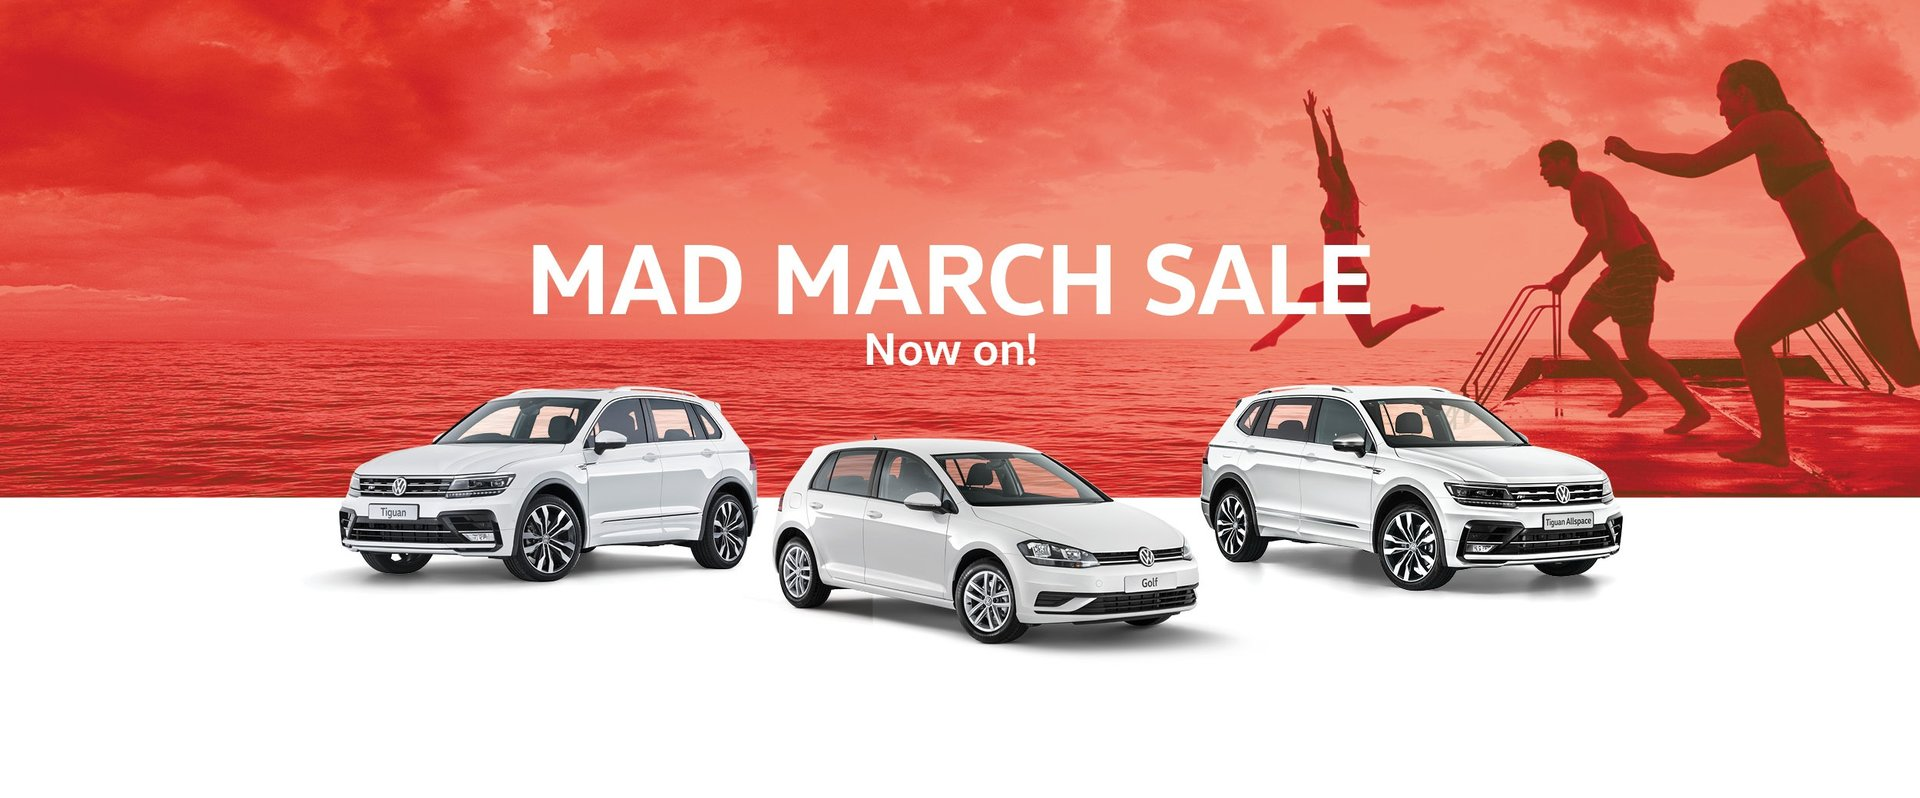 Mad March Sale!